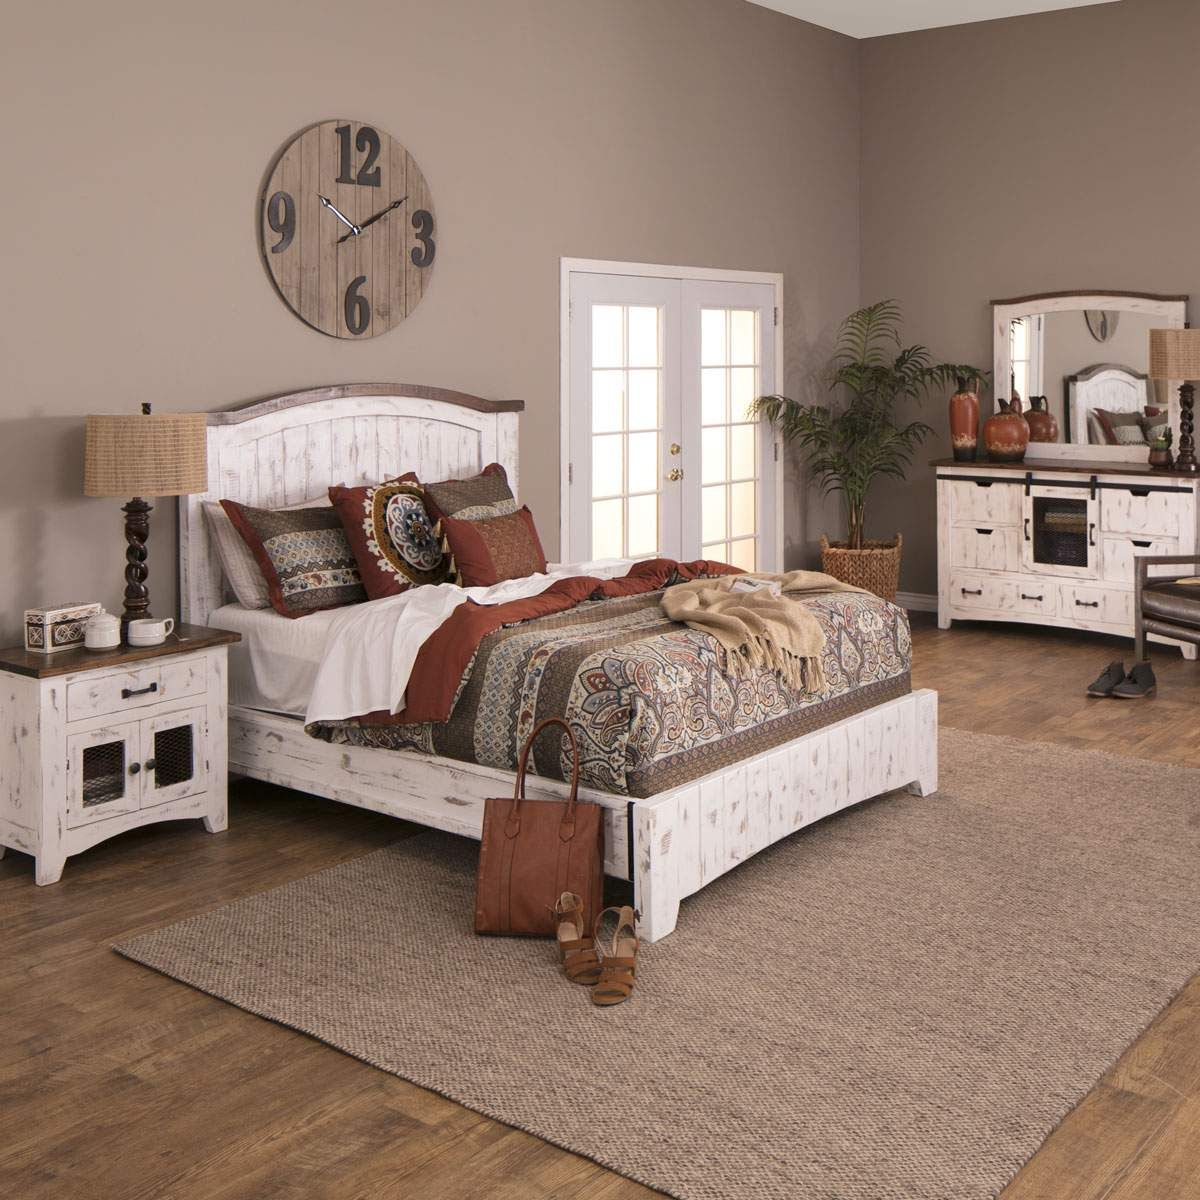 The Laid Back Style Of The Potter Bedroom Set Is Warm And Welcoming Rustic Wood Trim Contrasts The Dist Rustic Bedroom Furniture Bedroom Design Rustic Bedroom